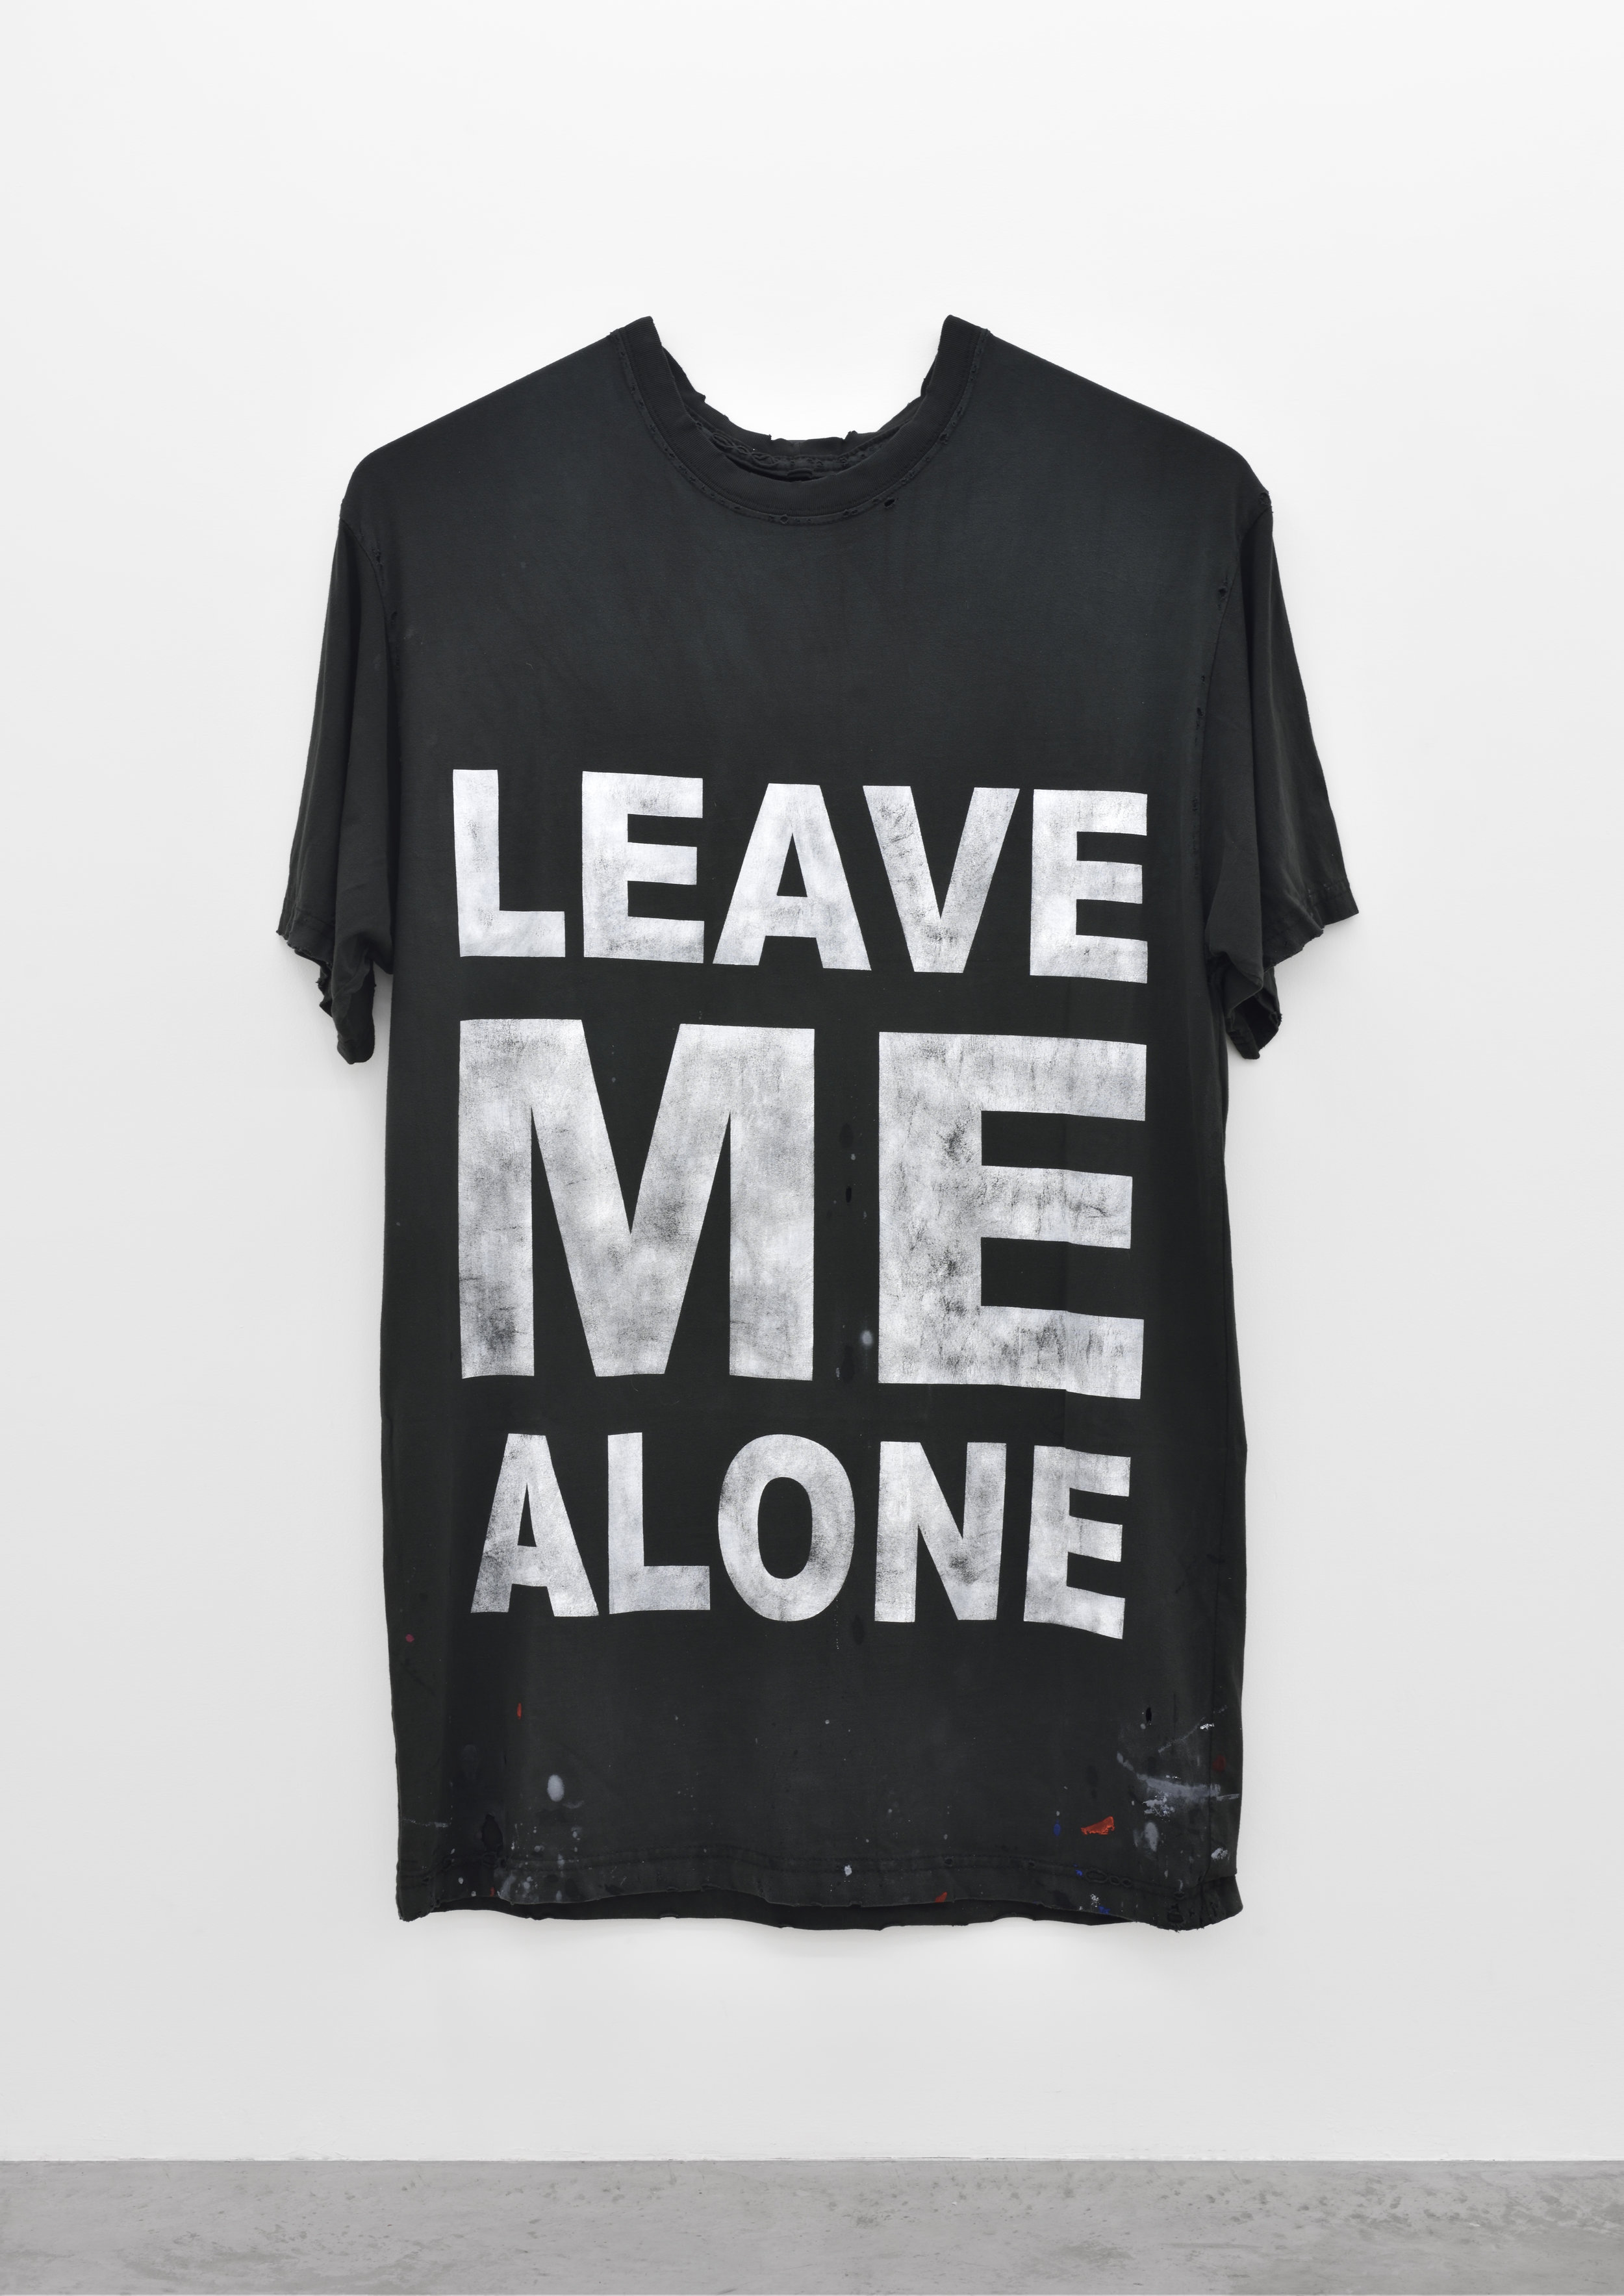 Leave Me Alone (INVERTED WITH TIMESTAMP), 2014 dyed cotton jersey and rib, thread, acrylic paint 190,5 x 129,5 cm - 75 x 51 inches